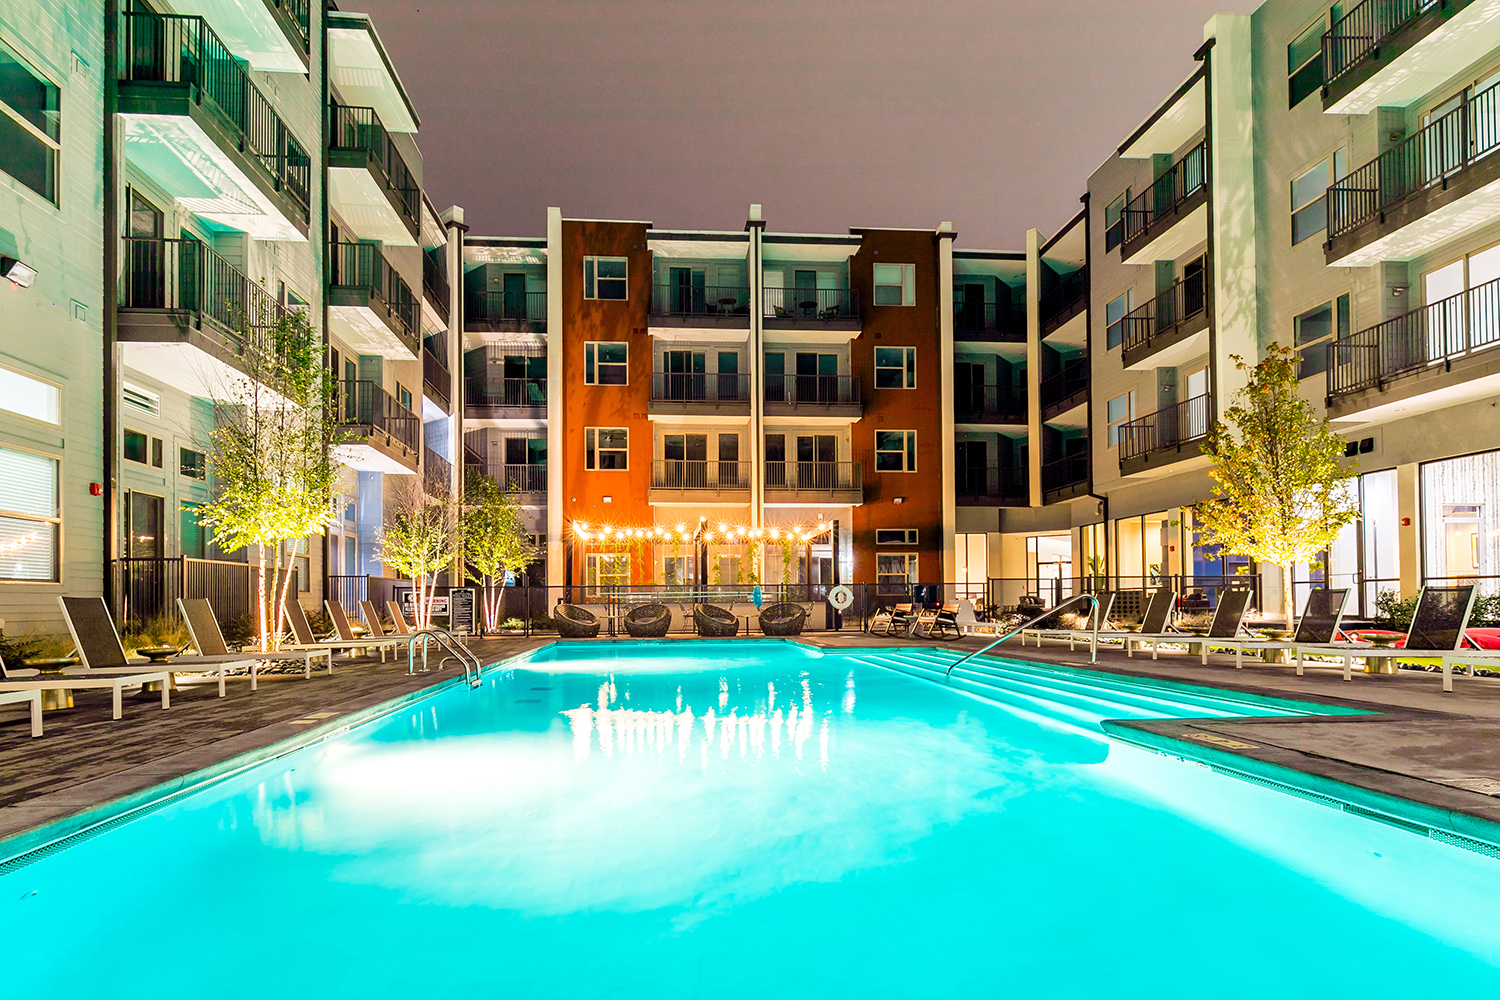 Metropolitan apartments in birmingham alabama pet friendly - 1 bedroom apartments in hoover al ...